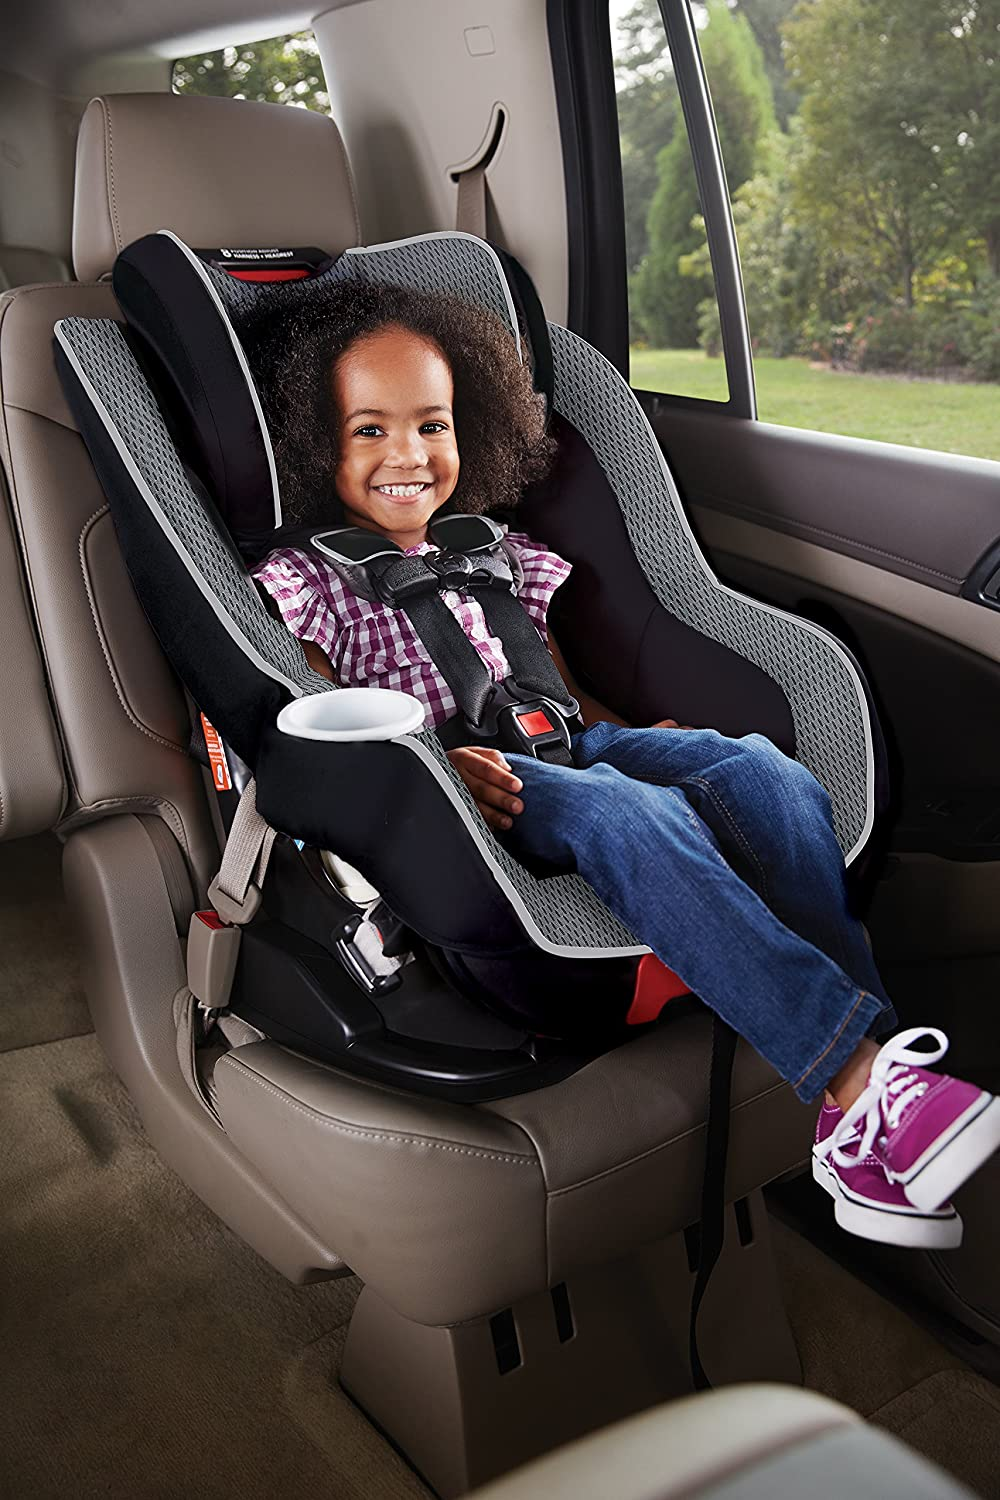 c3fcd6a1408 Graco Size4Me 65 Convertible Car Seat featuring RapidRemove